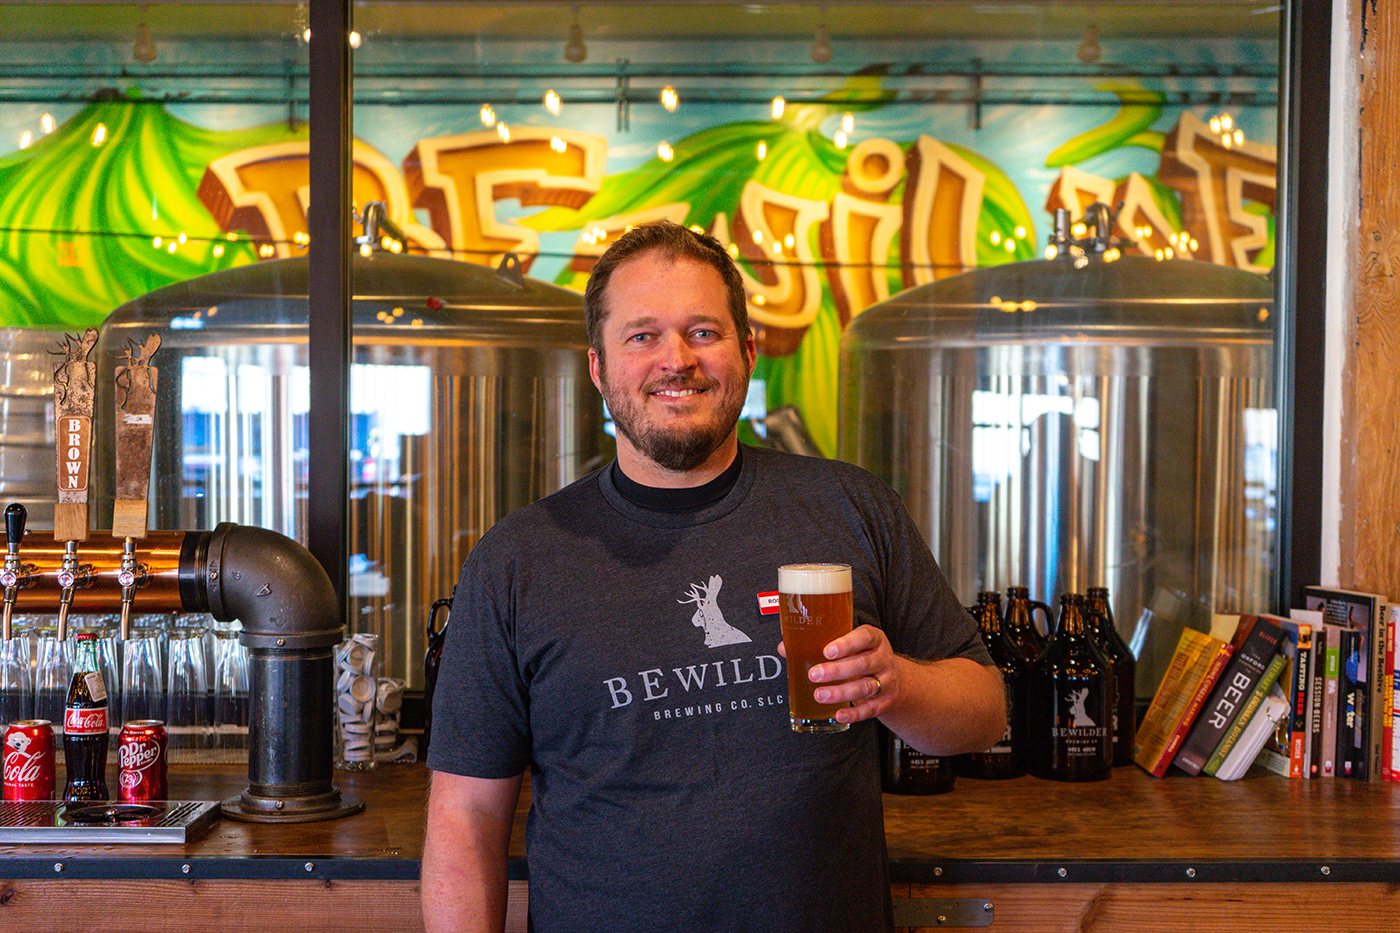 Bewilder Brewing Co-Founder Ross Metzger feels optimistic about the future of his freshly opened brewery.